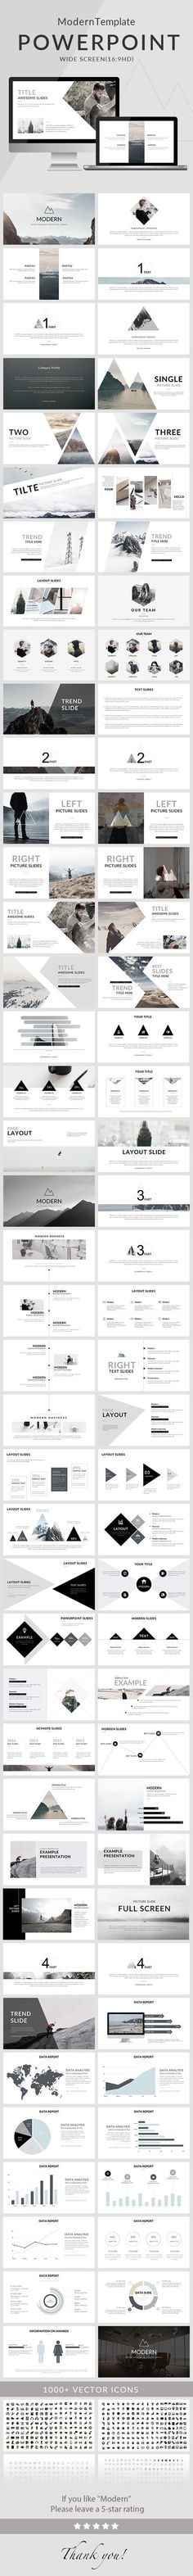 Modern - Powerpoint Template. Download here: https://graphicriver.net/item/modern-powerpoint-template/17237032?ref=ksioks